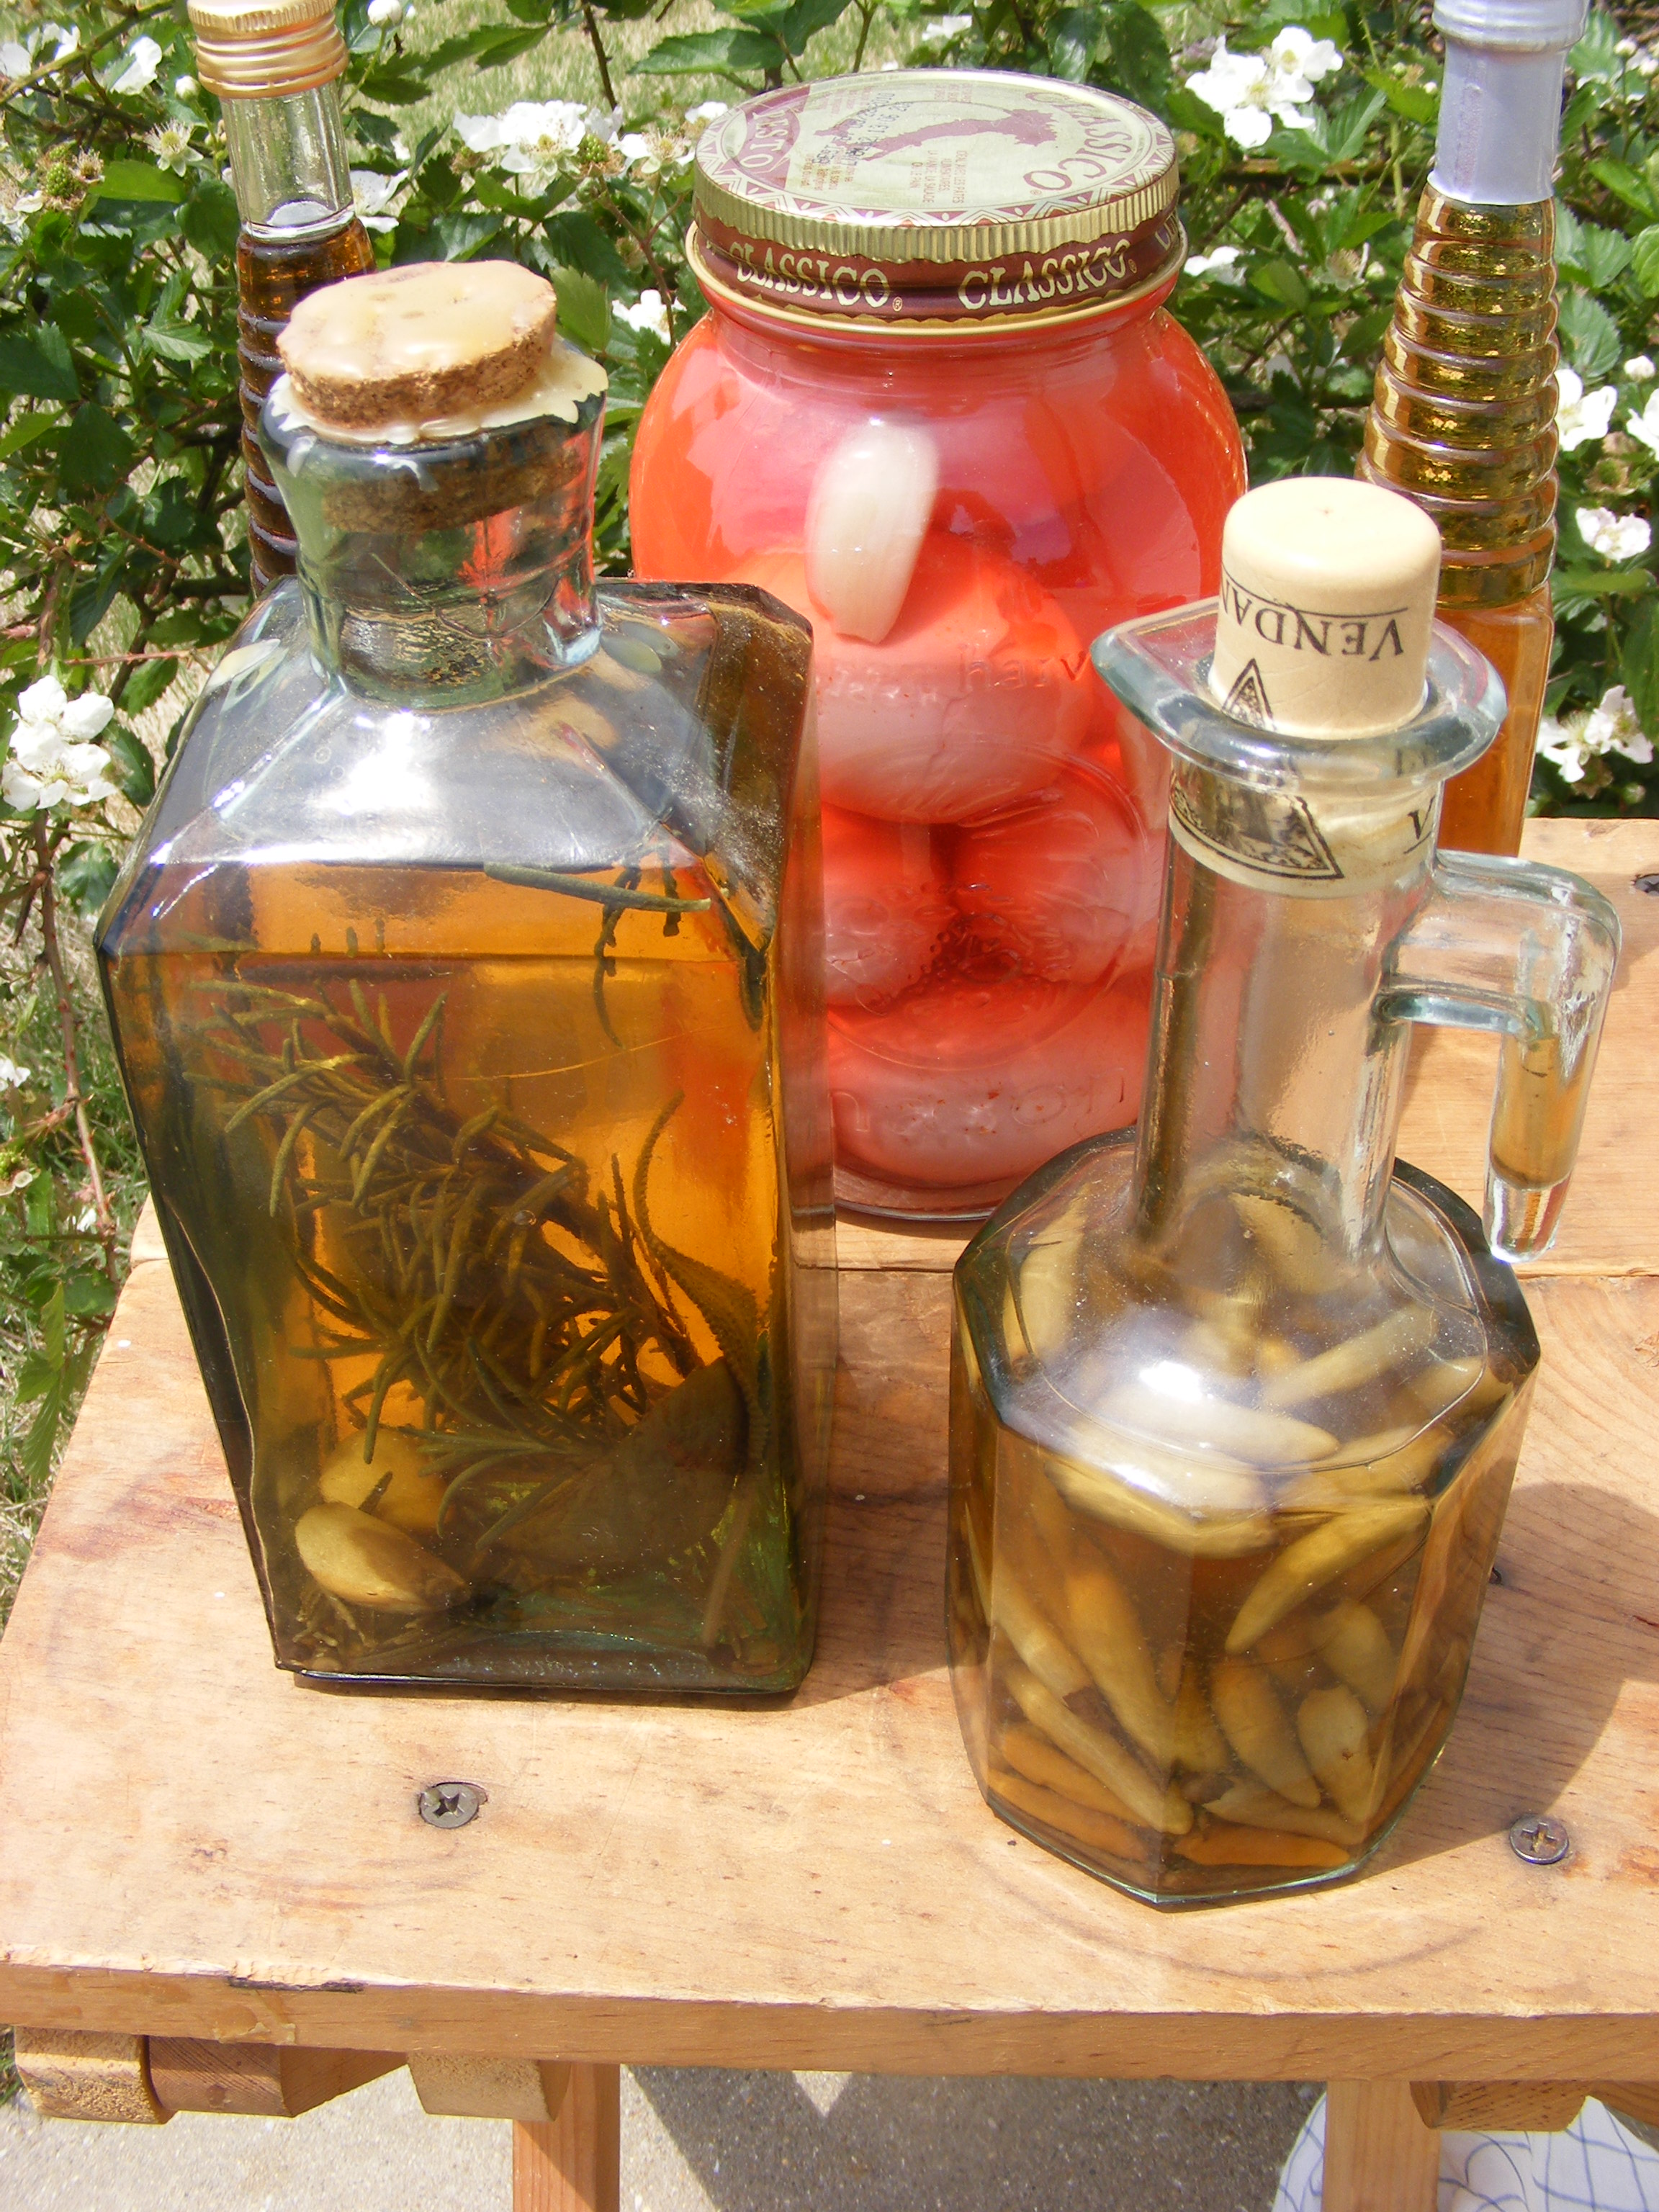 A selection of herbal vinegars